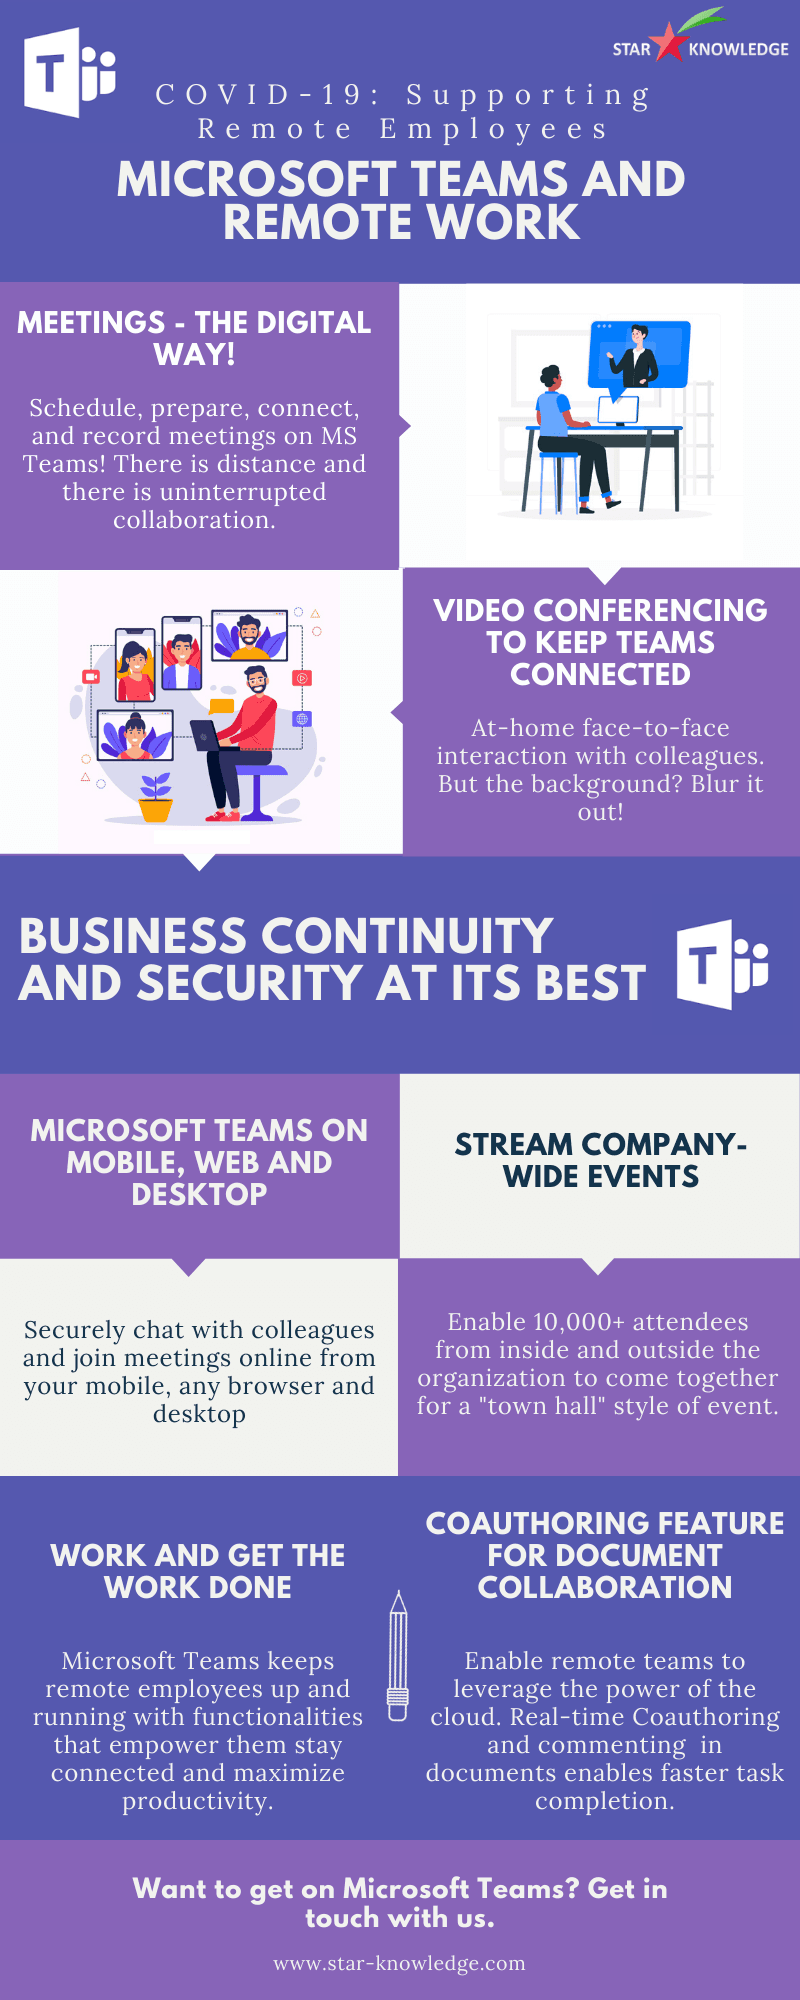 Microsoft Teams—work from home—star knowledge